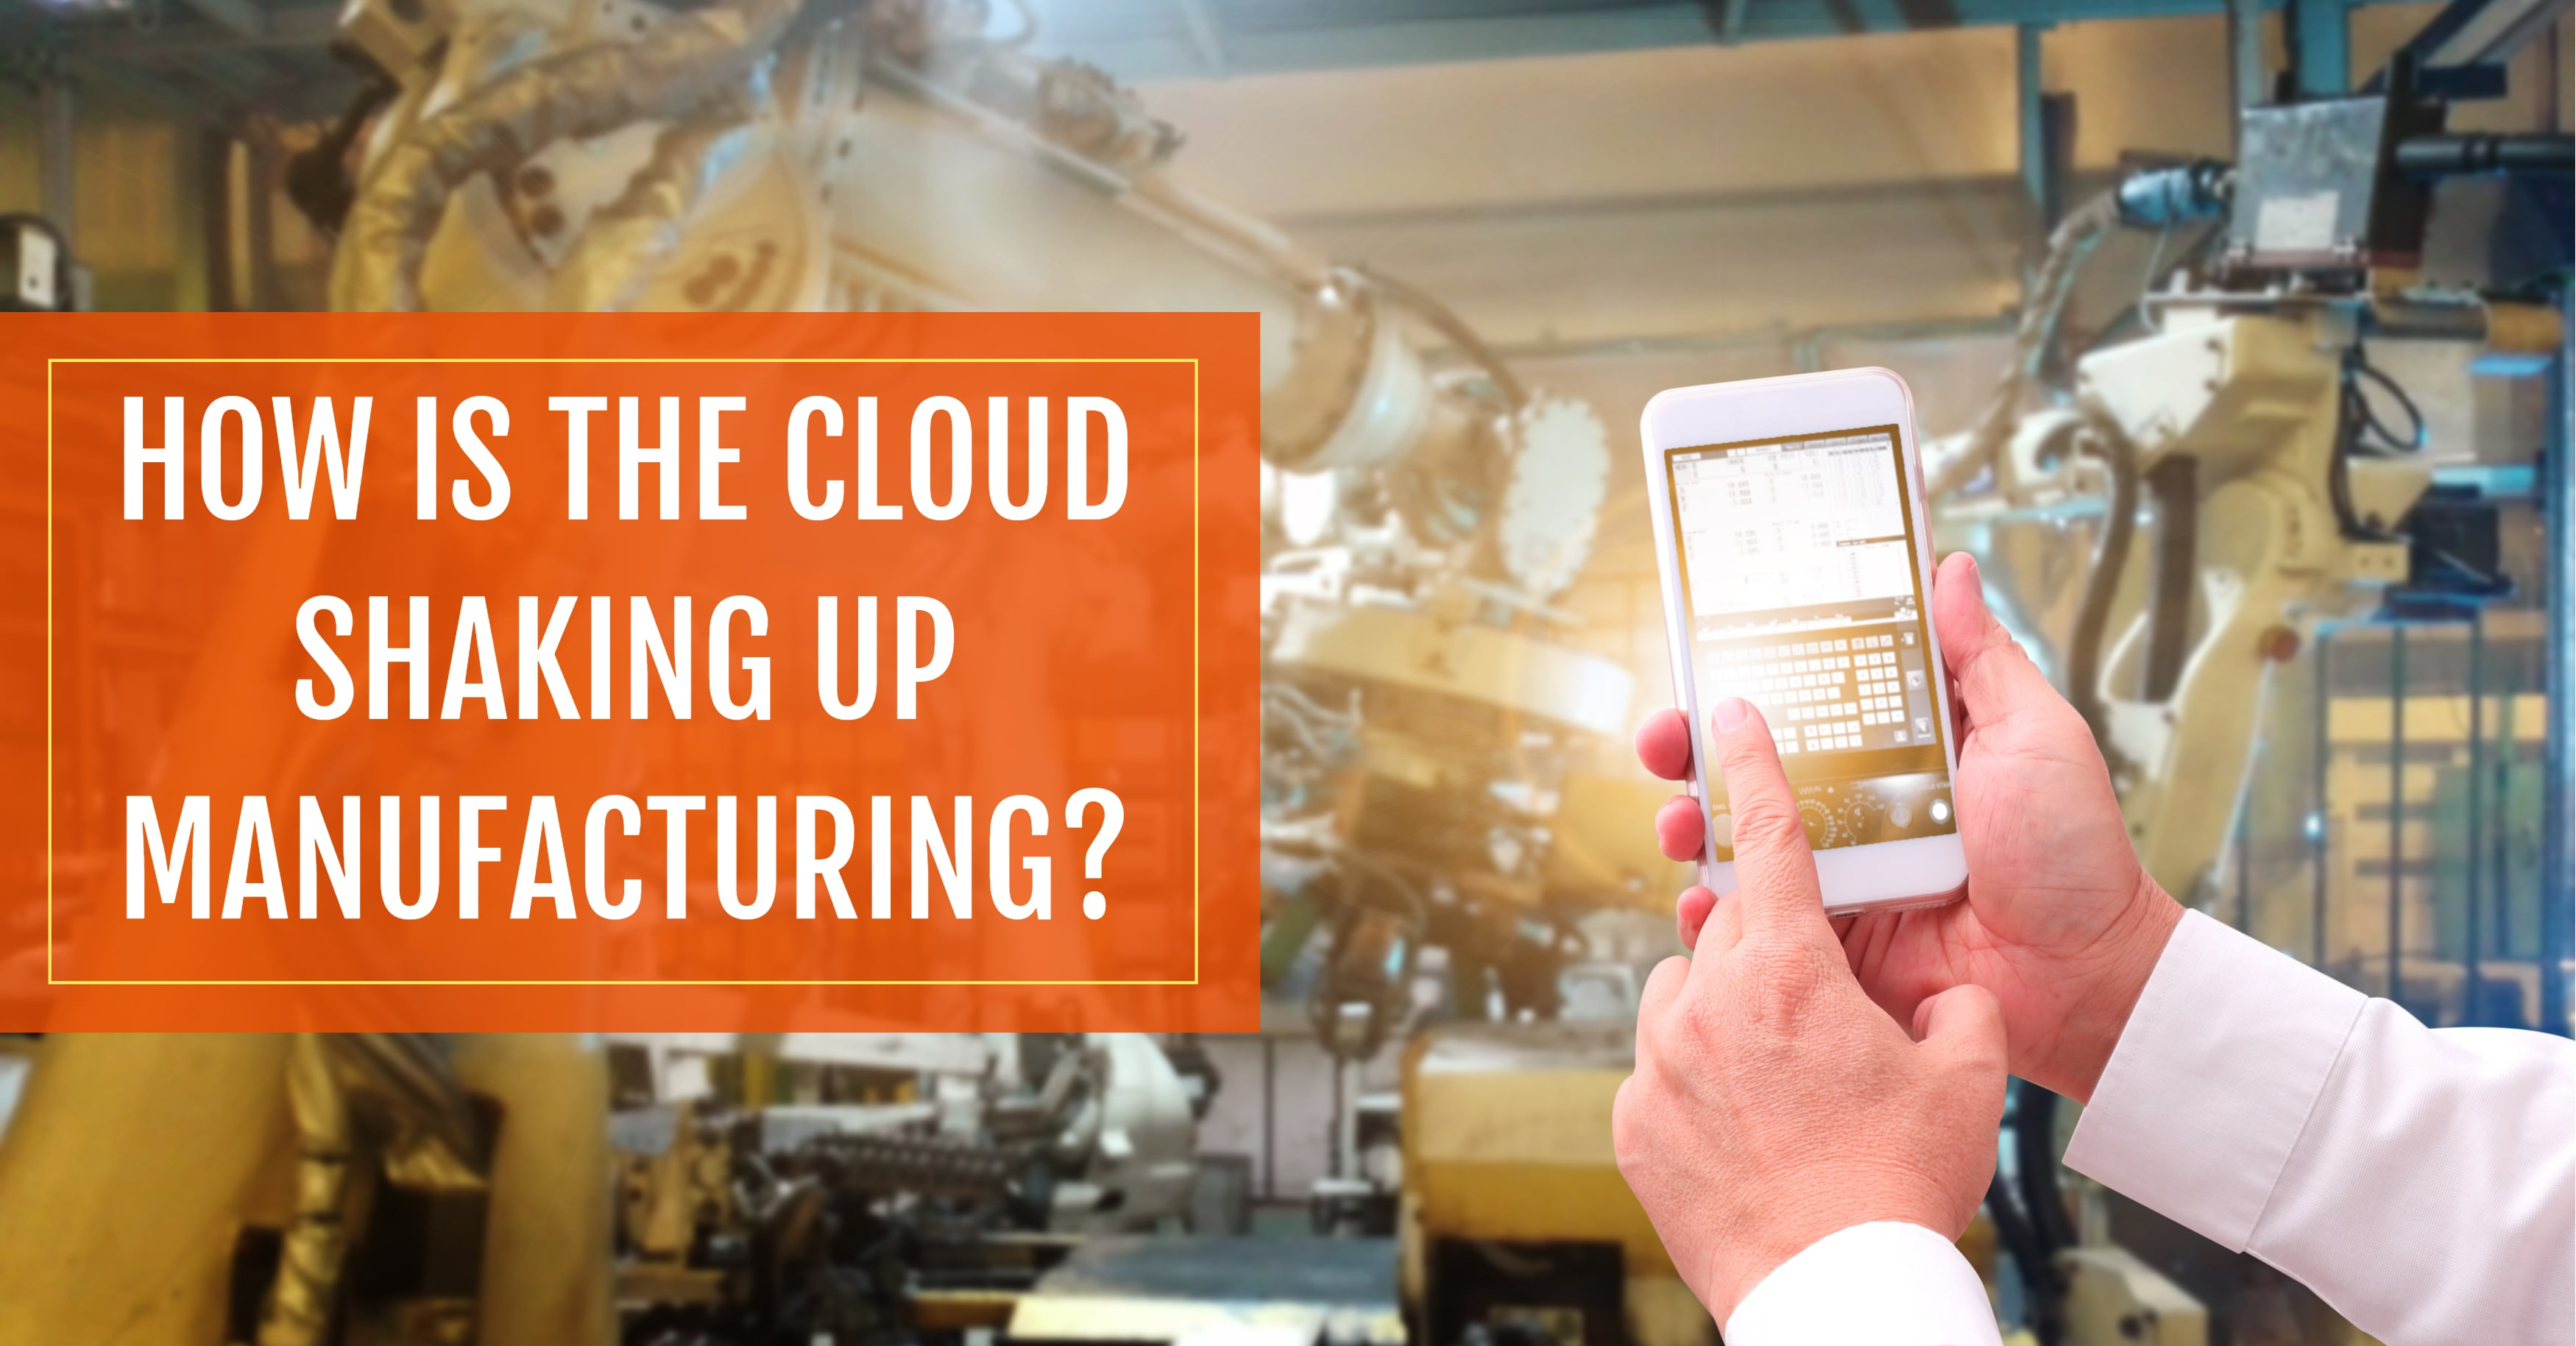 How is the Cloud Shaking Up Manufacturing?